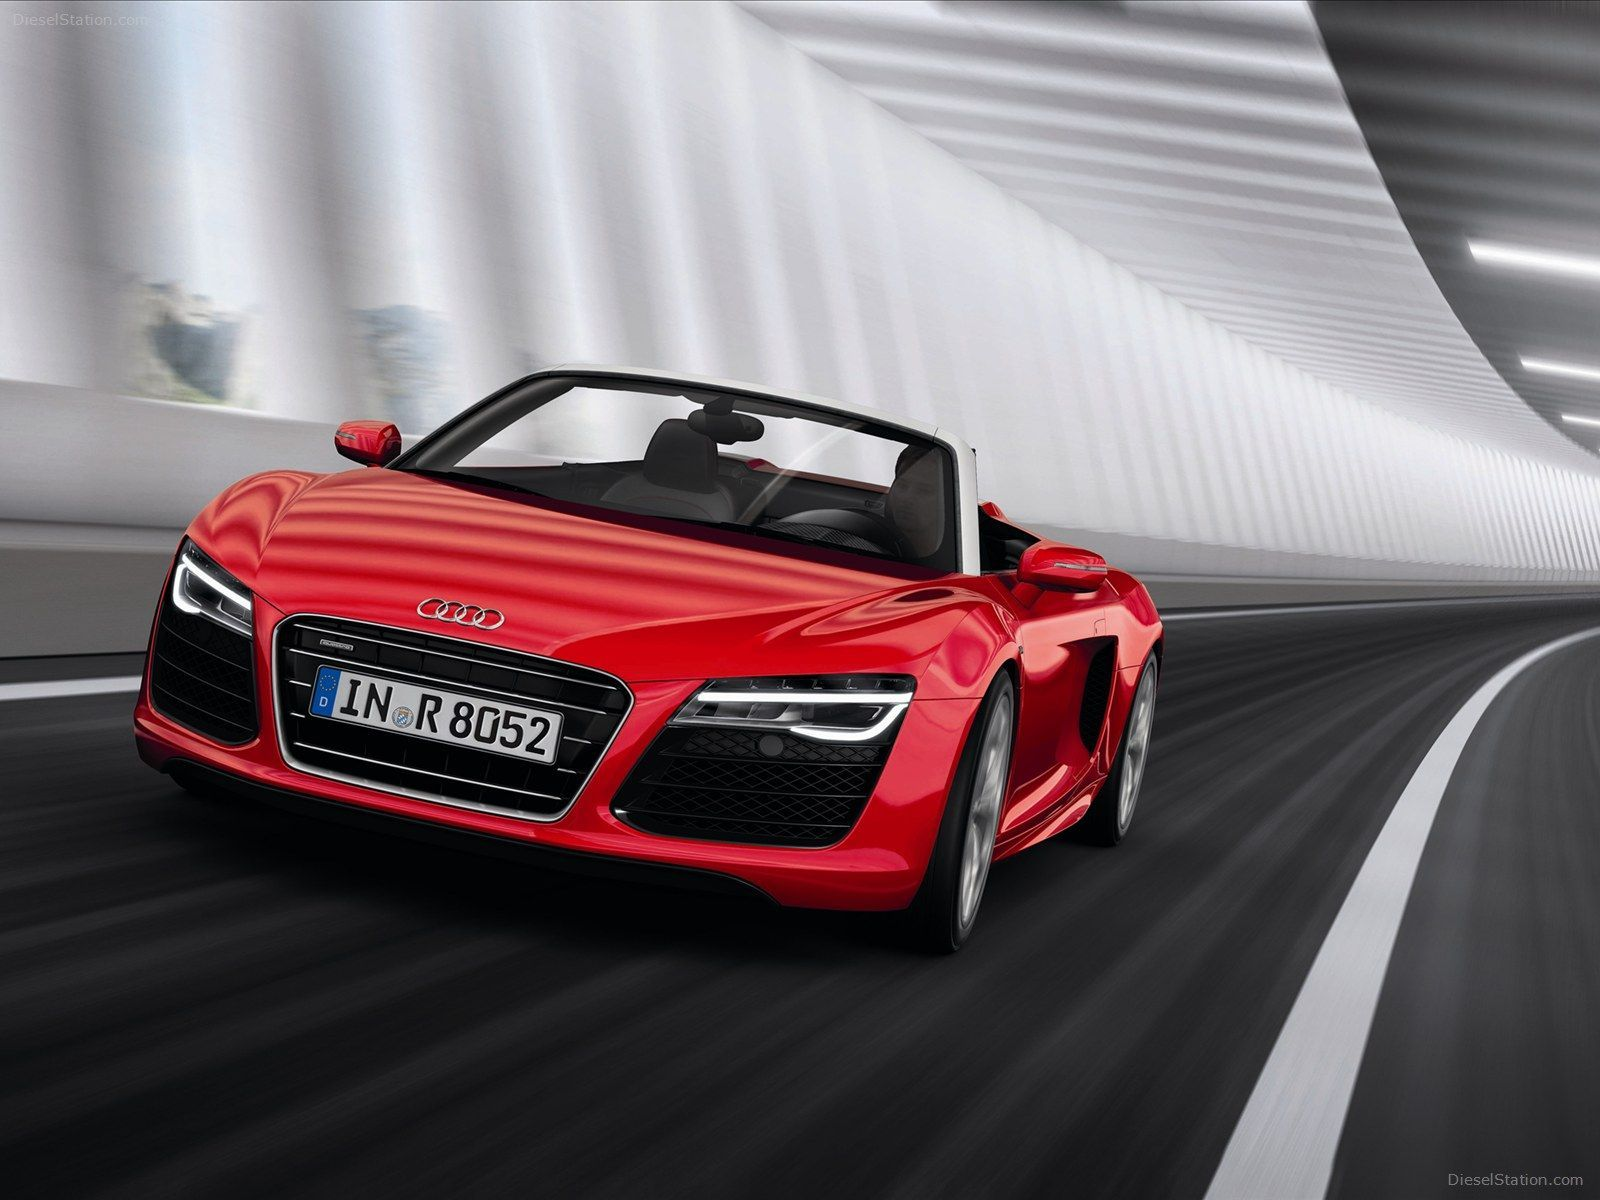 43 Best Free Red Audi R8 Wallpapers Wallpaperaccess